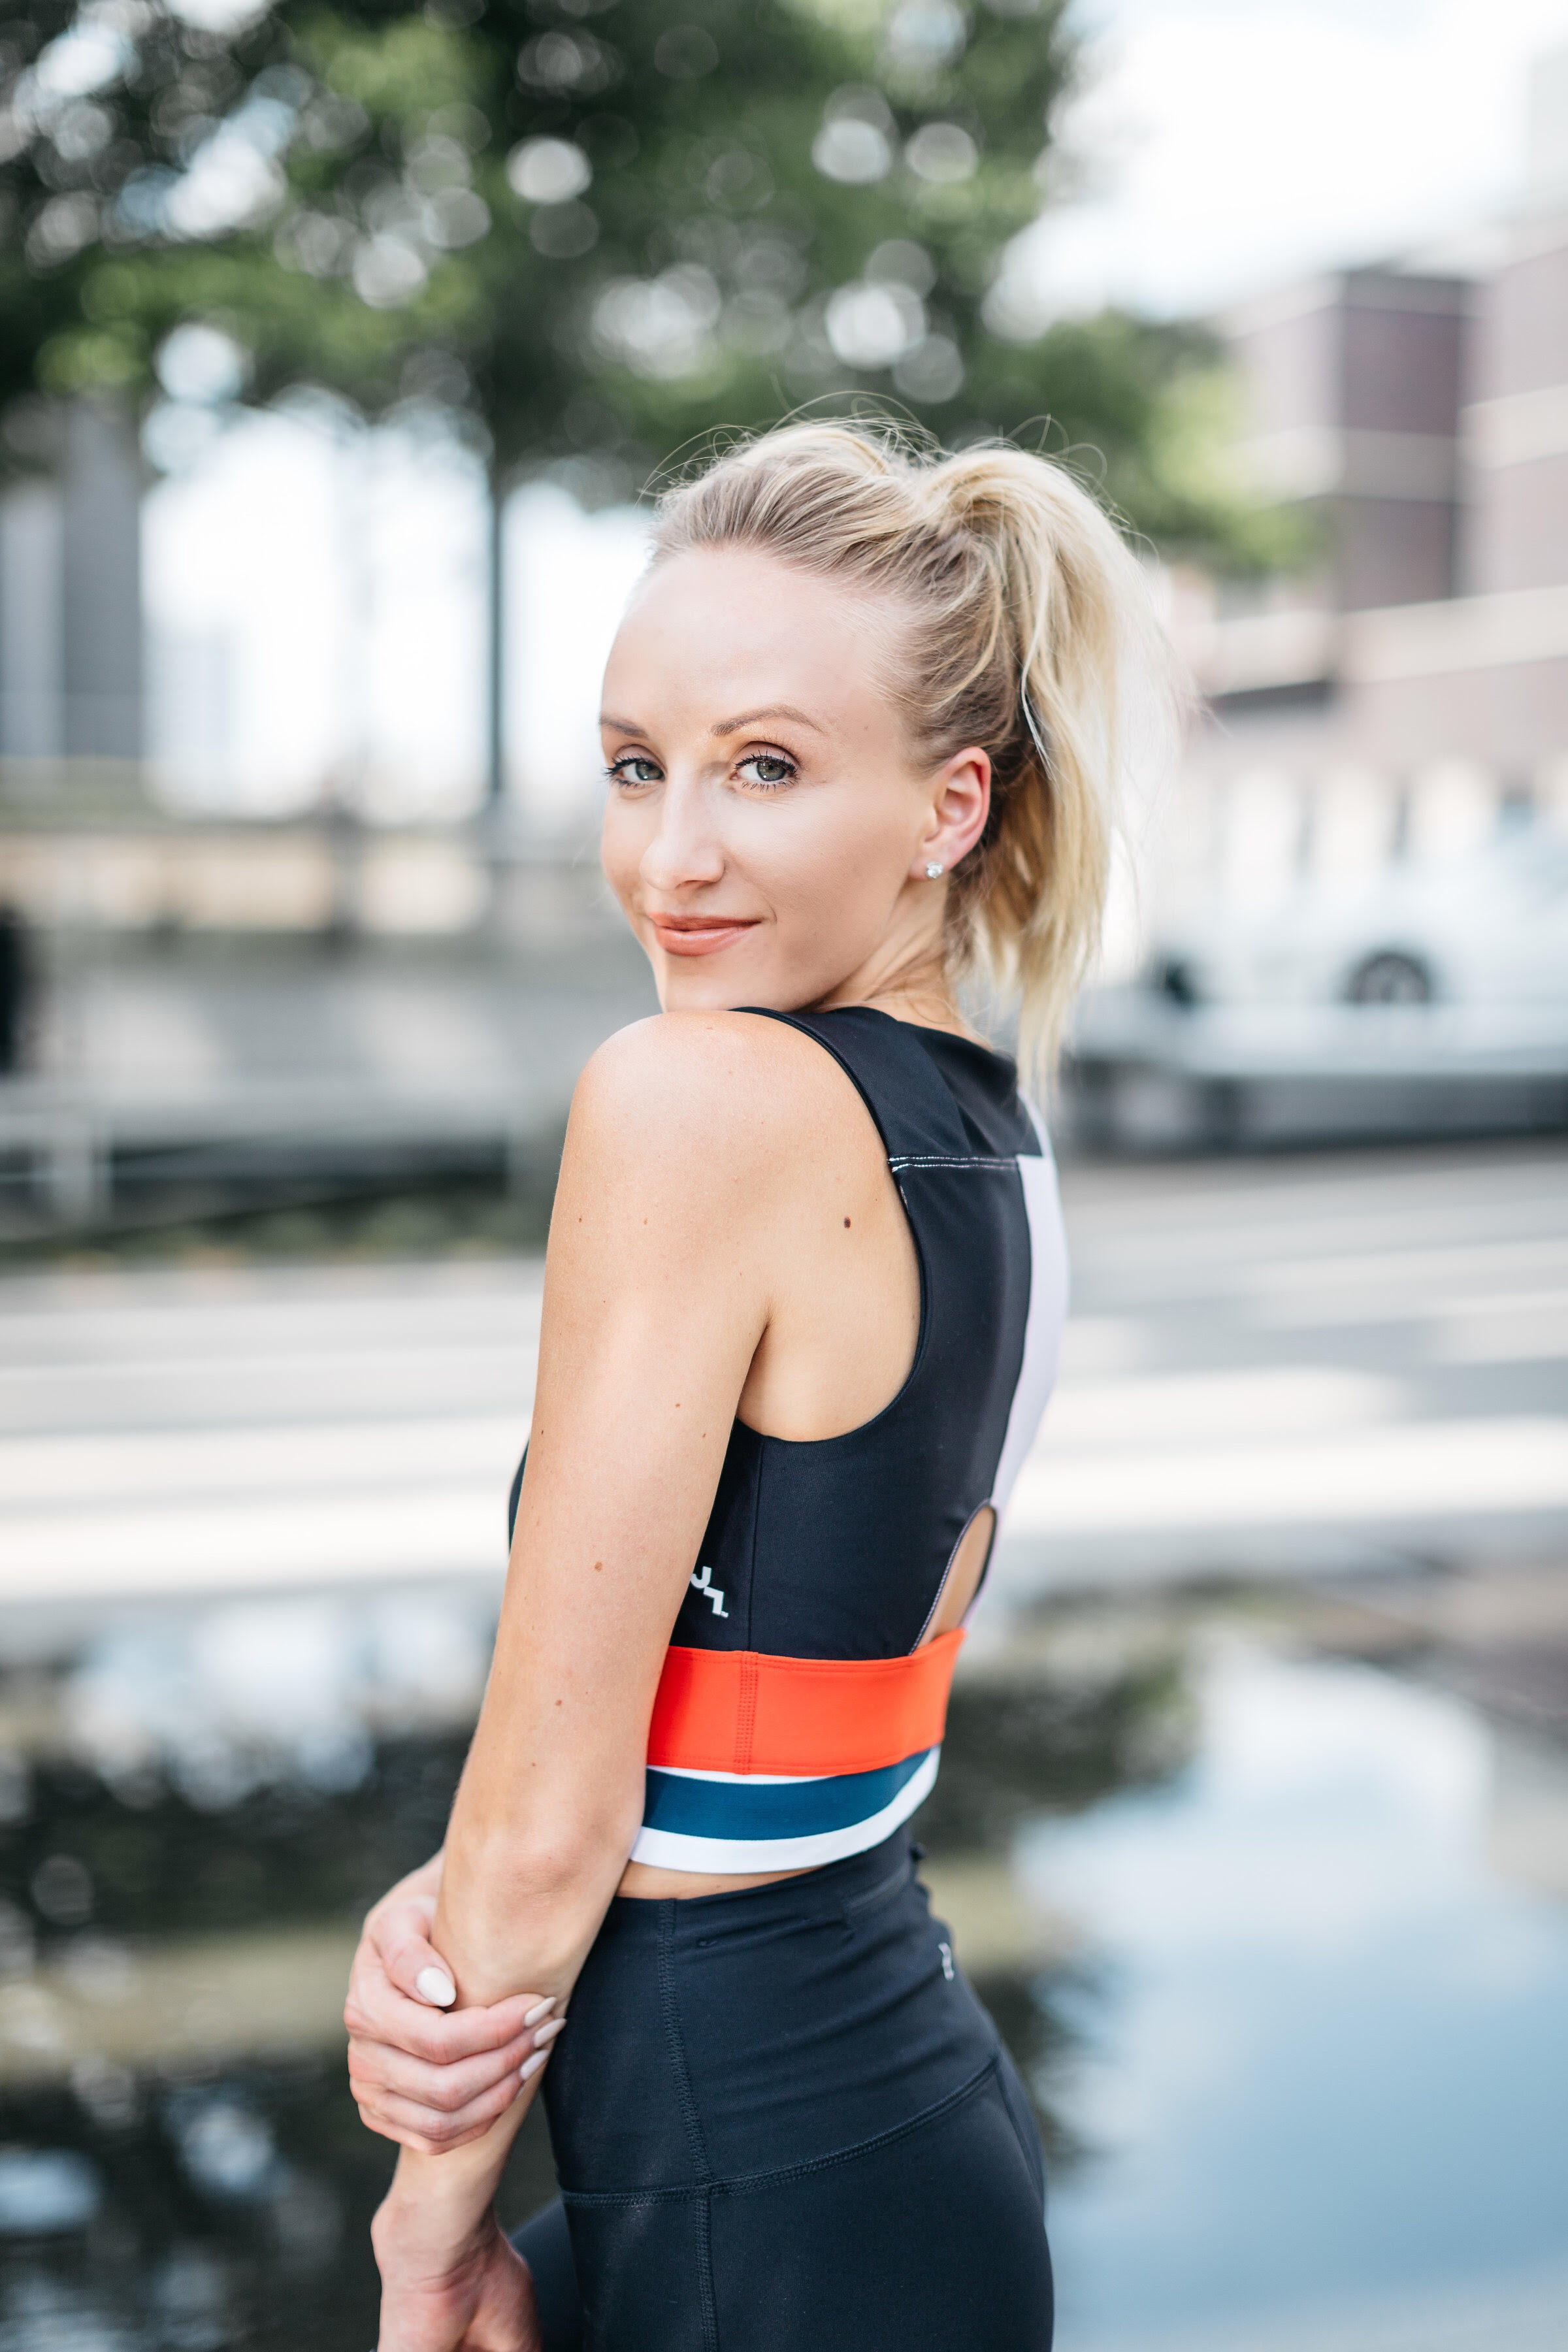 The 4 Workouts I'm Trying This Fall